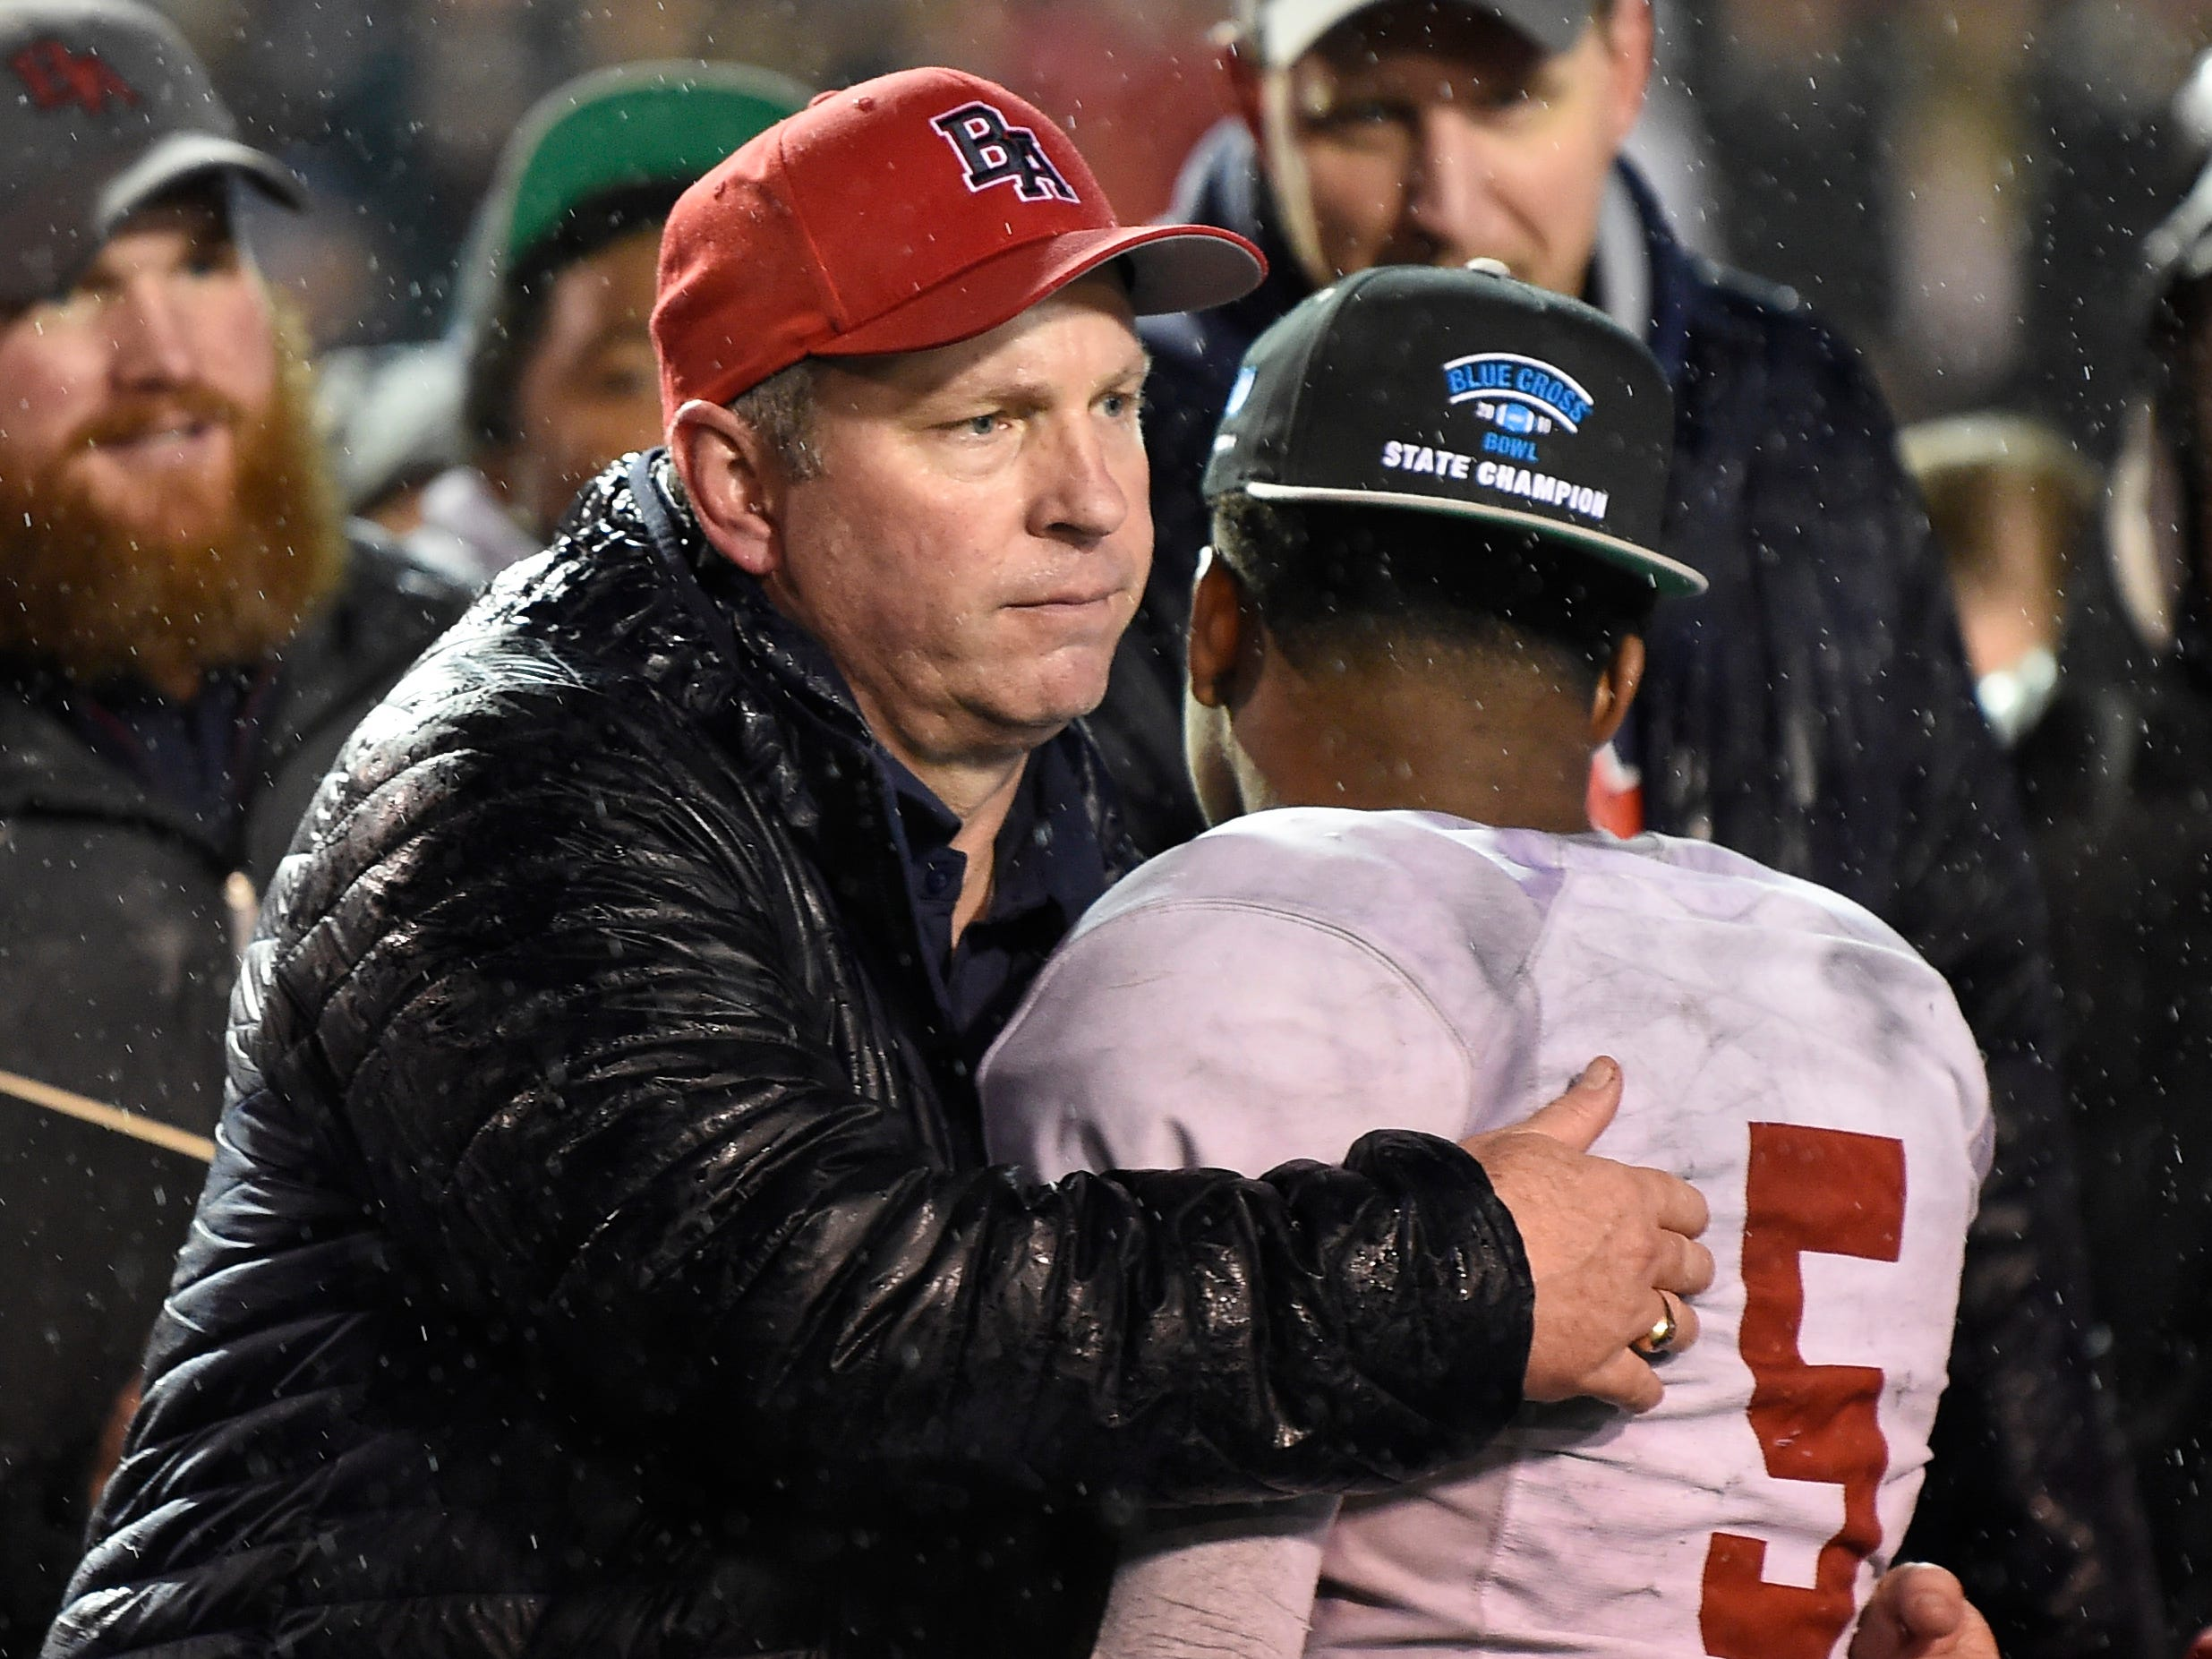 Brentwood Academy head coach Cody White hugs running back Tomario Pleasant (5) after he was awarded the game MVP award at the Division II-AAA BlueCross Bowl state championship at Tennessee Tech's Tucker Stadium in Cookeville, Tenn., on Friday, Nov. 30, 2018.